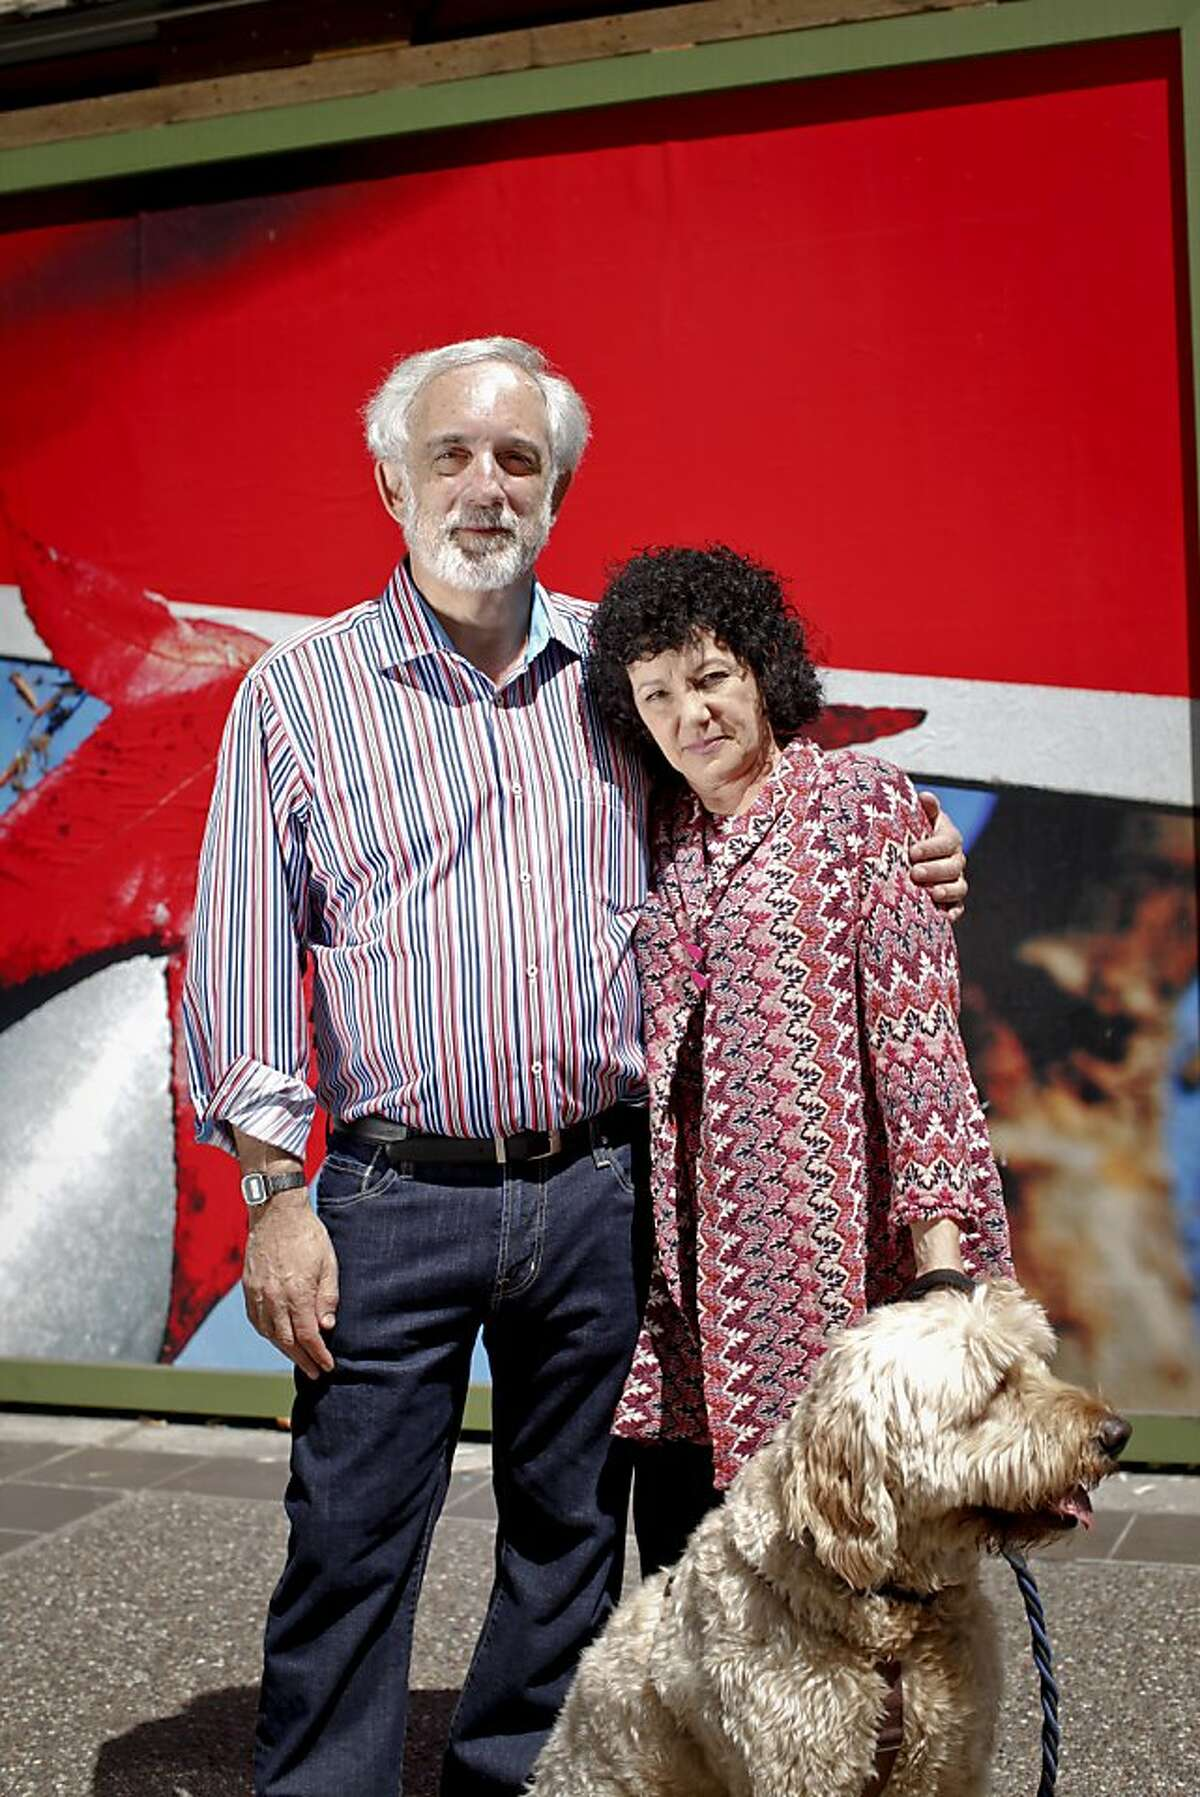 Mitch Kapor and Freada Kapor Klein and their dog, Dudley, stand in front of the new home of the Kapor Center for Social Impact that they are renovating in Oakland, Calif., on Wednesday, June 20, 2013.